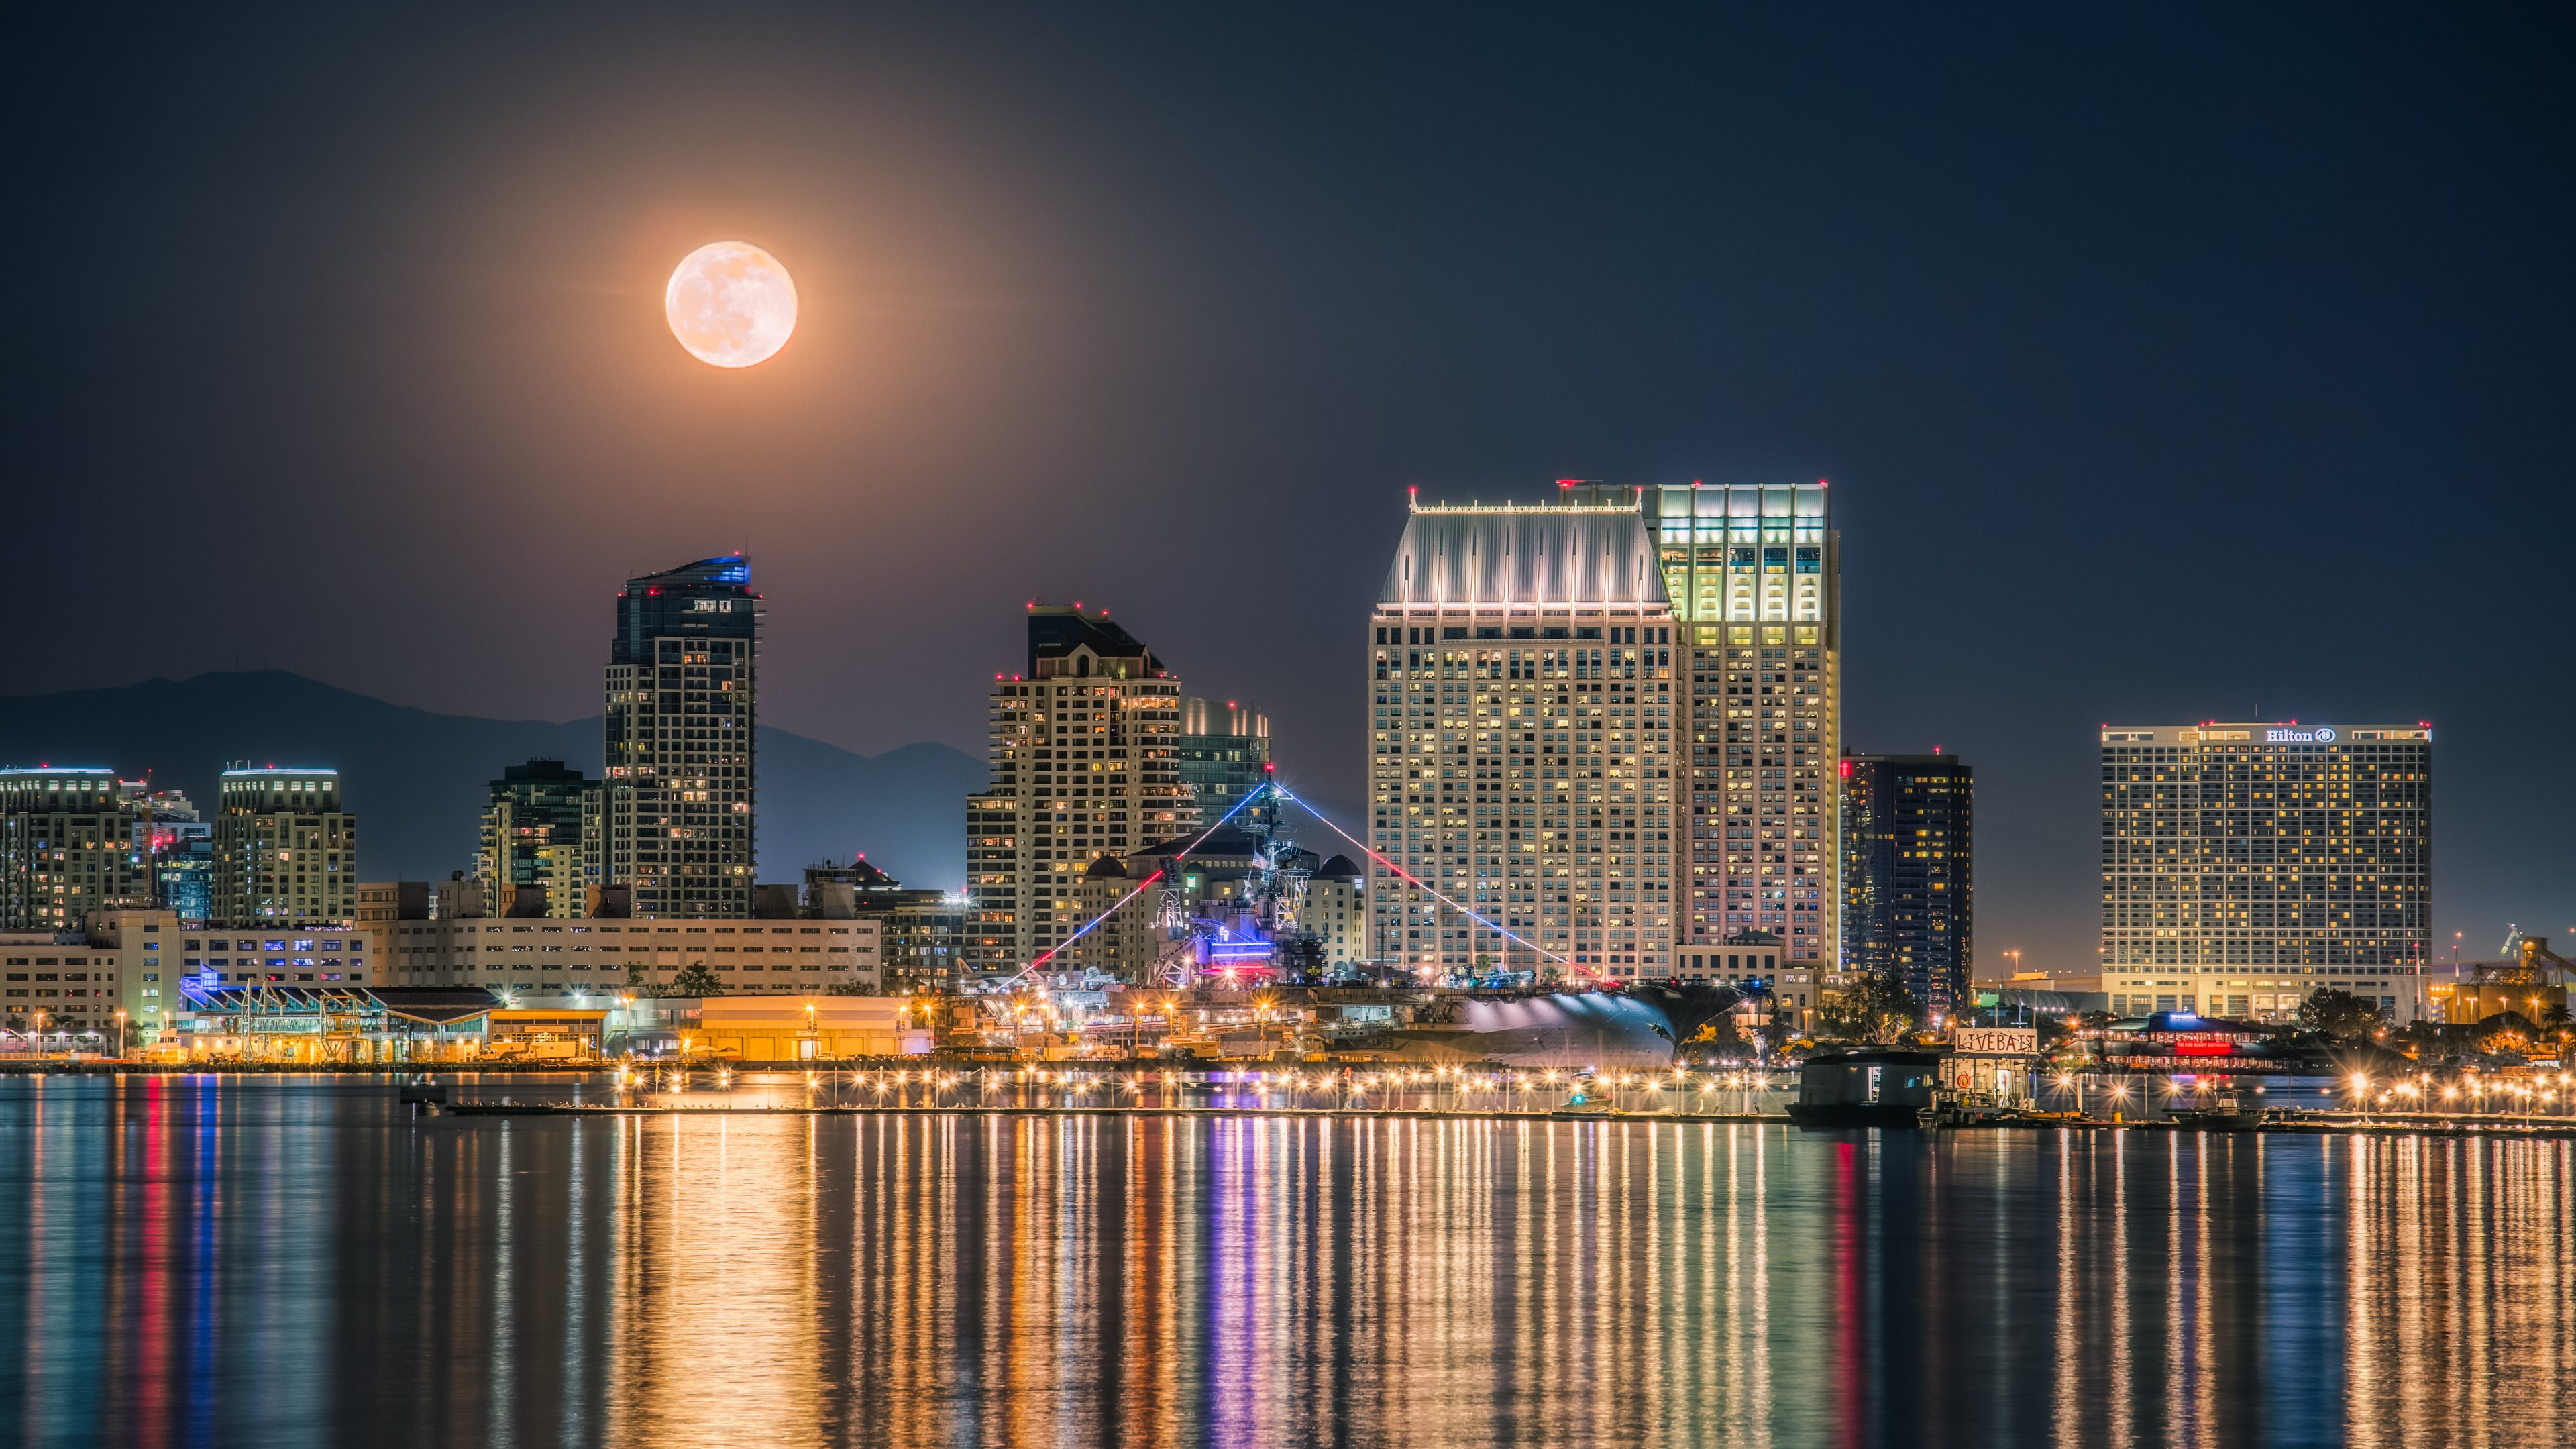 Full Moon above the City widescreen wallpaper | Wide-Wallpapers.NET